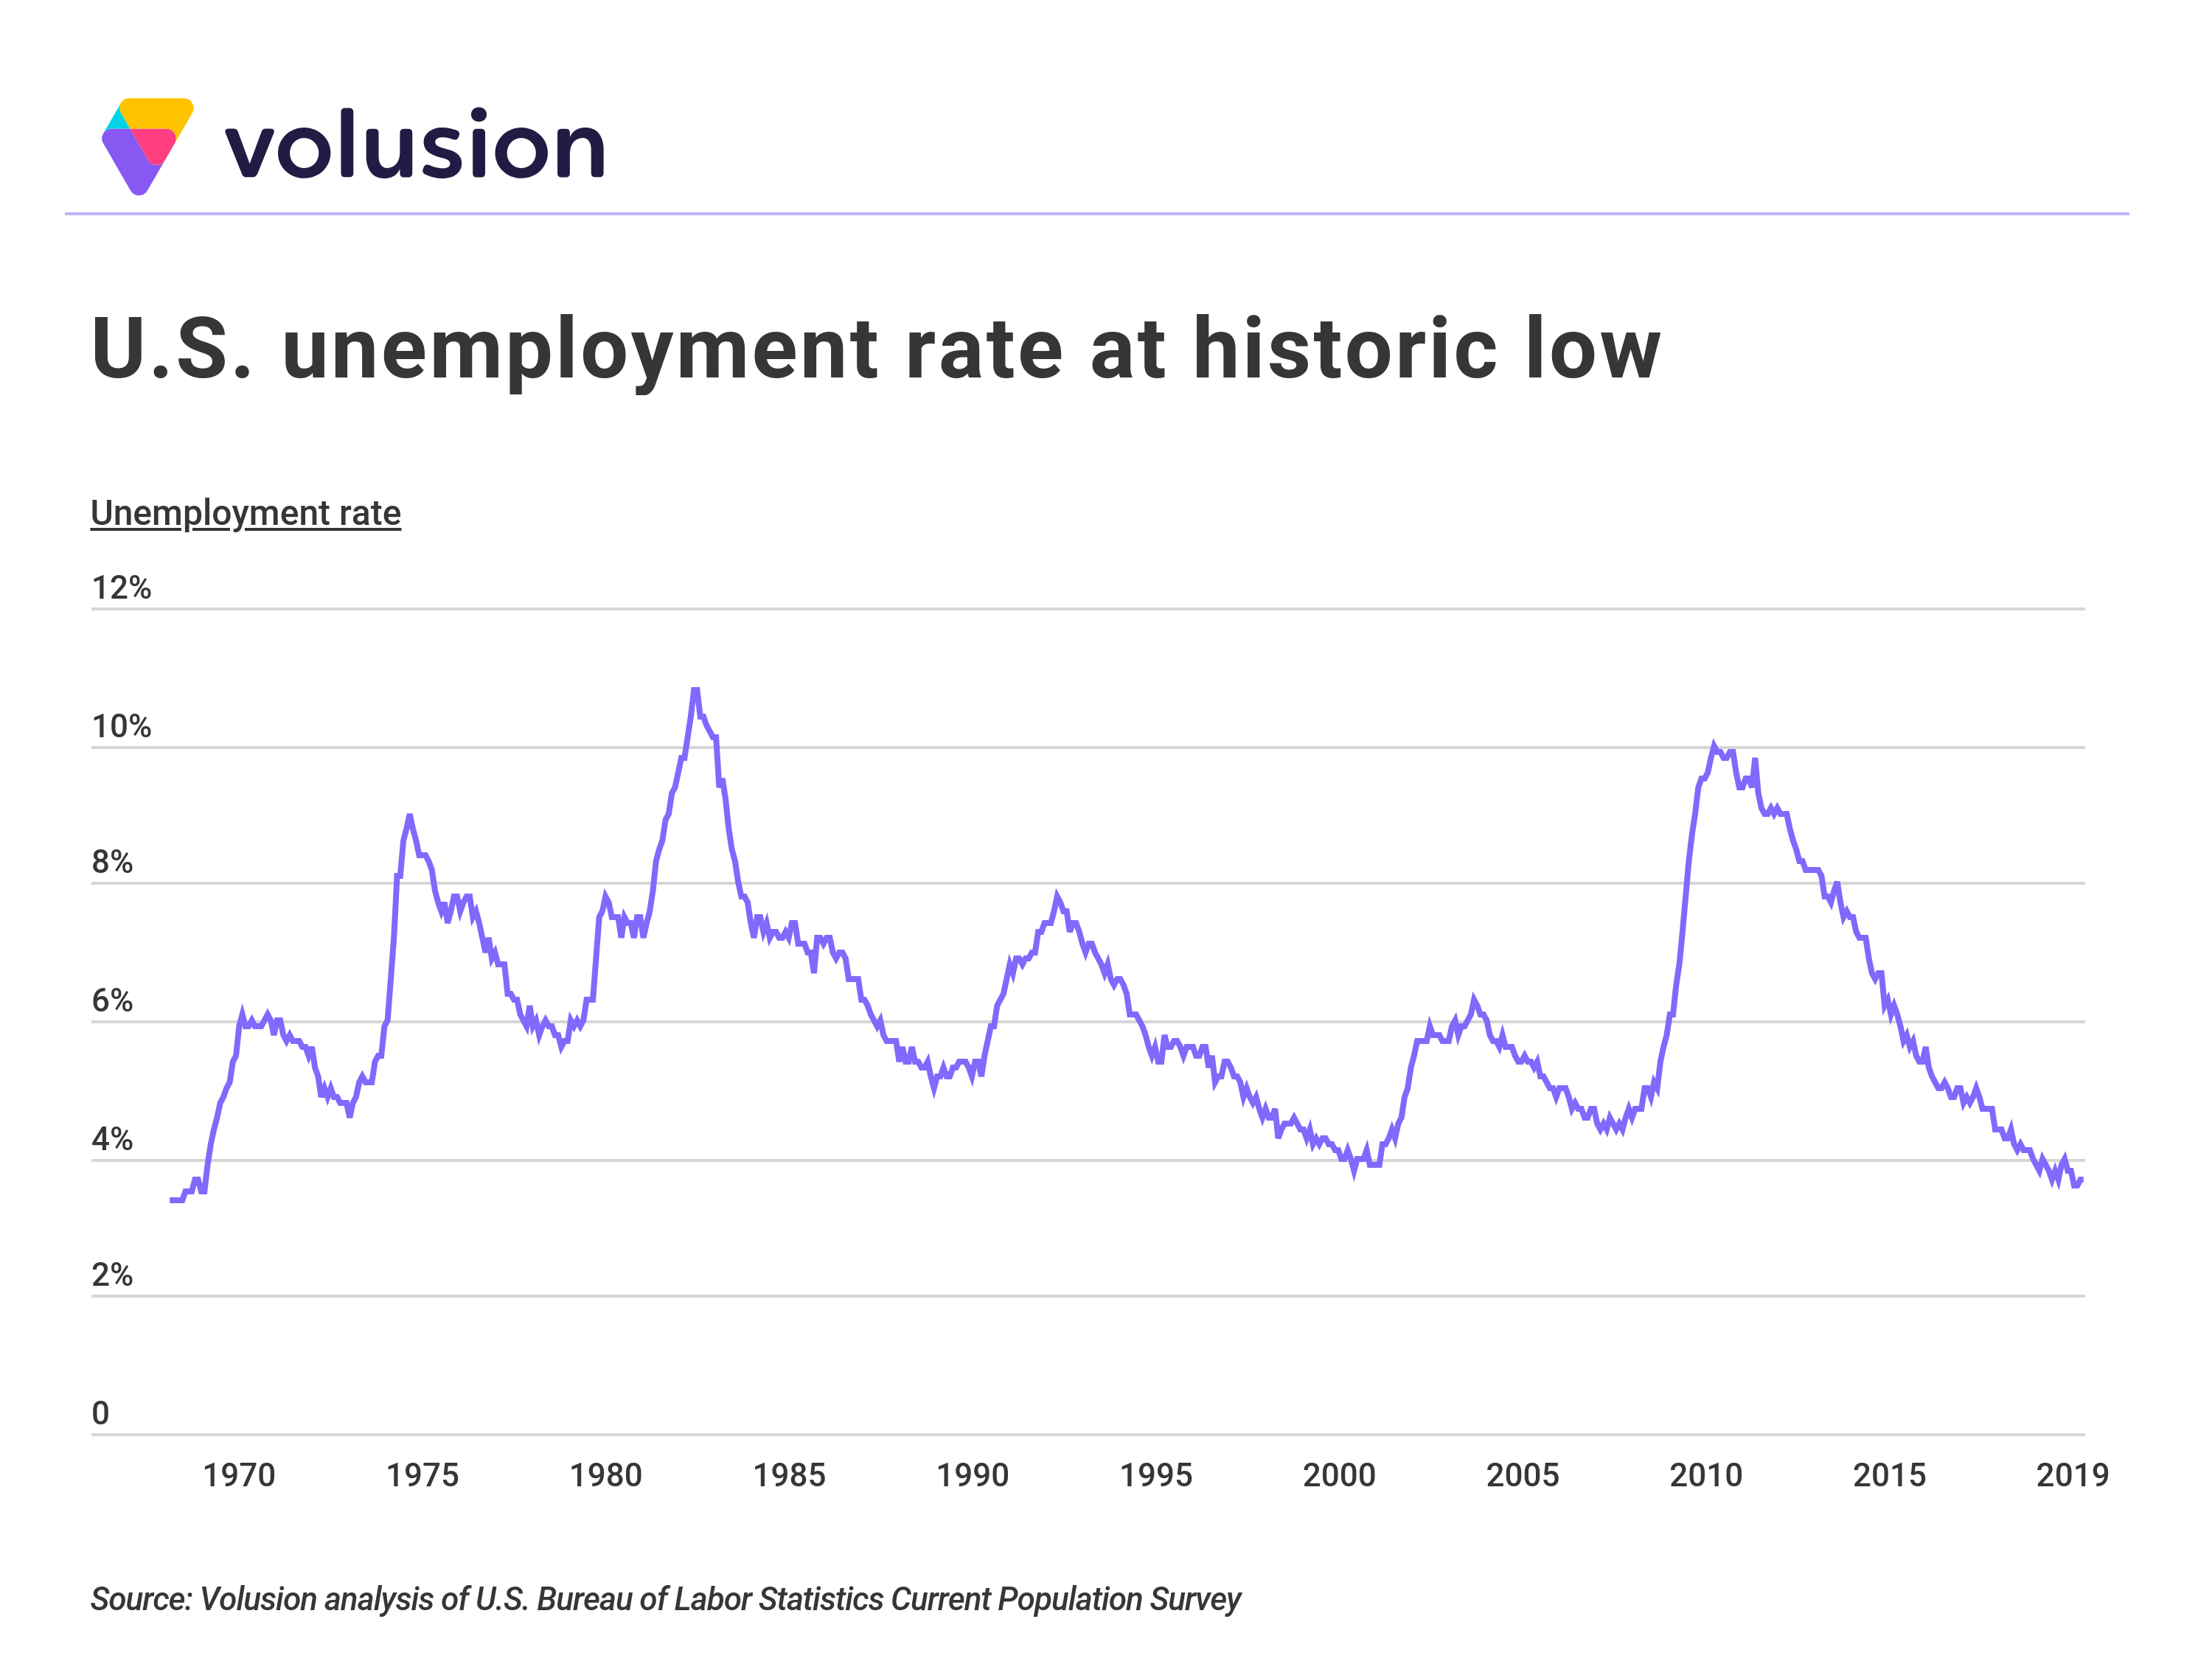 Line graph showing U.S. unemployment rate from 1970-2019